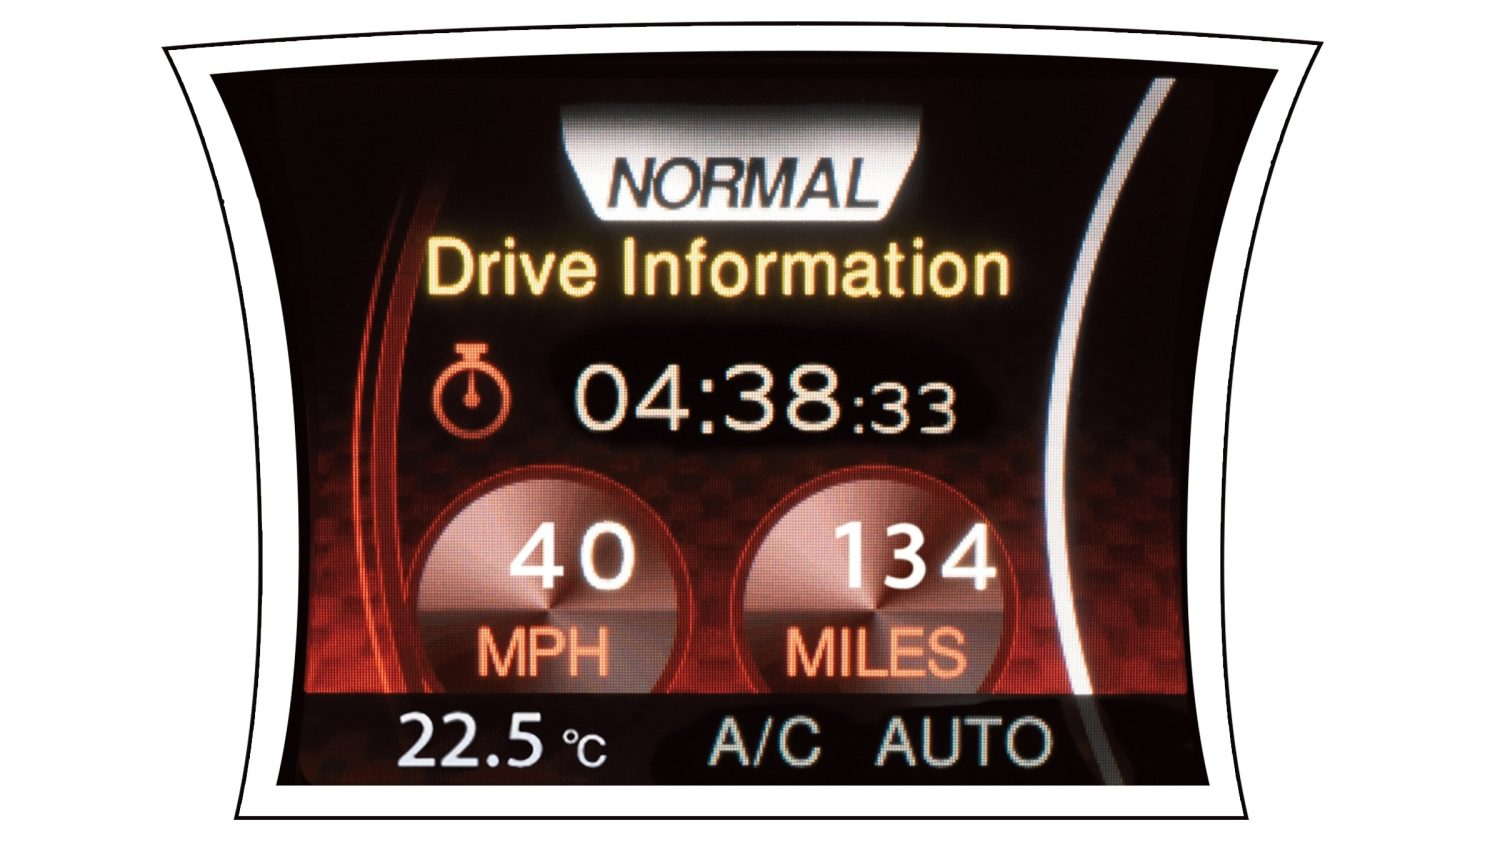 2018 Nissan JUKE drive information screen